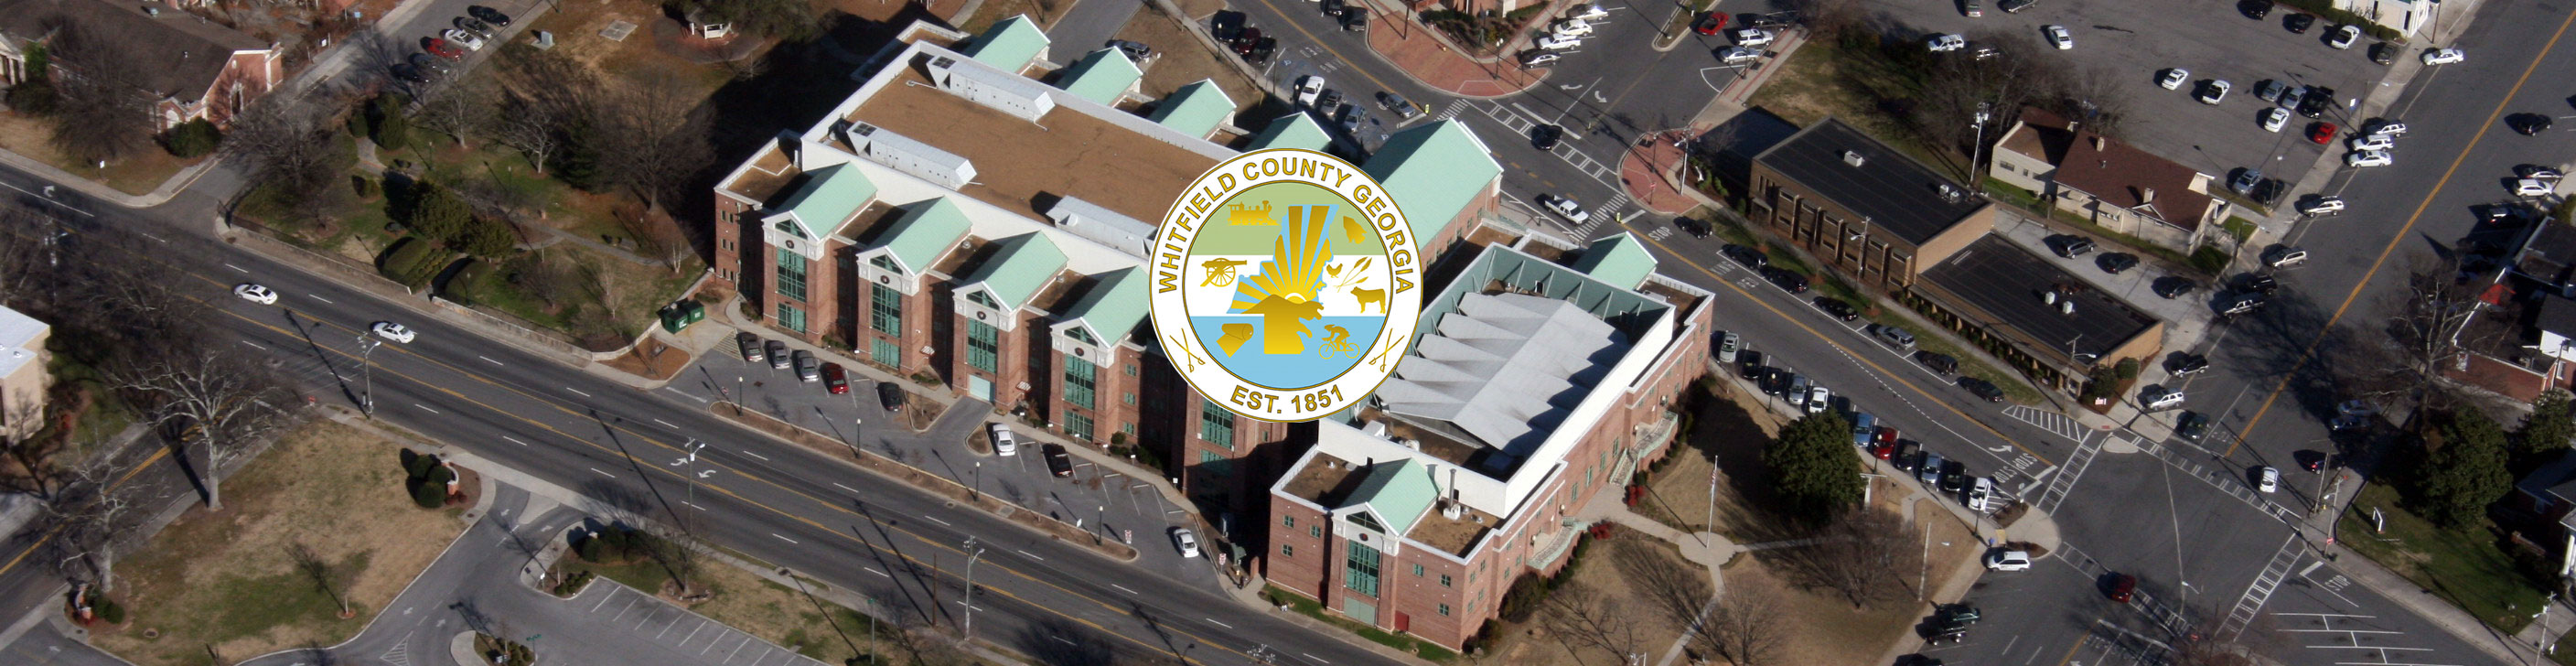 Courthouse Aerial